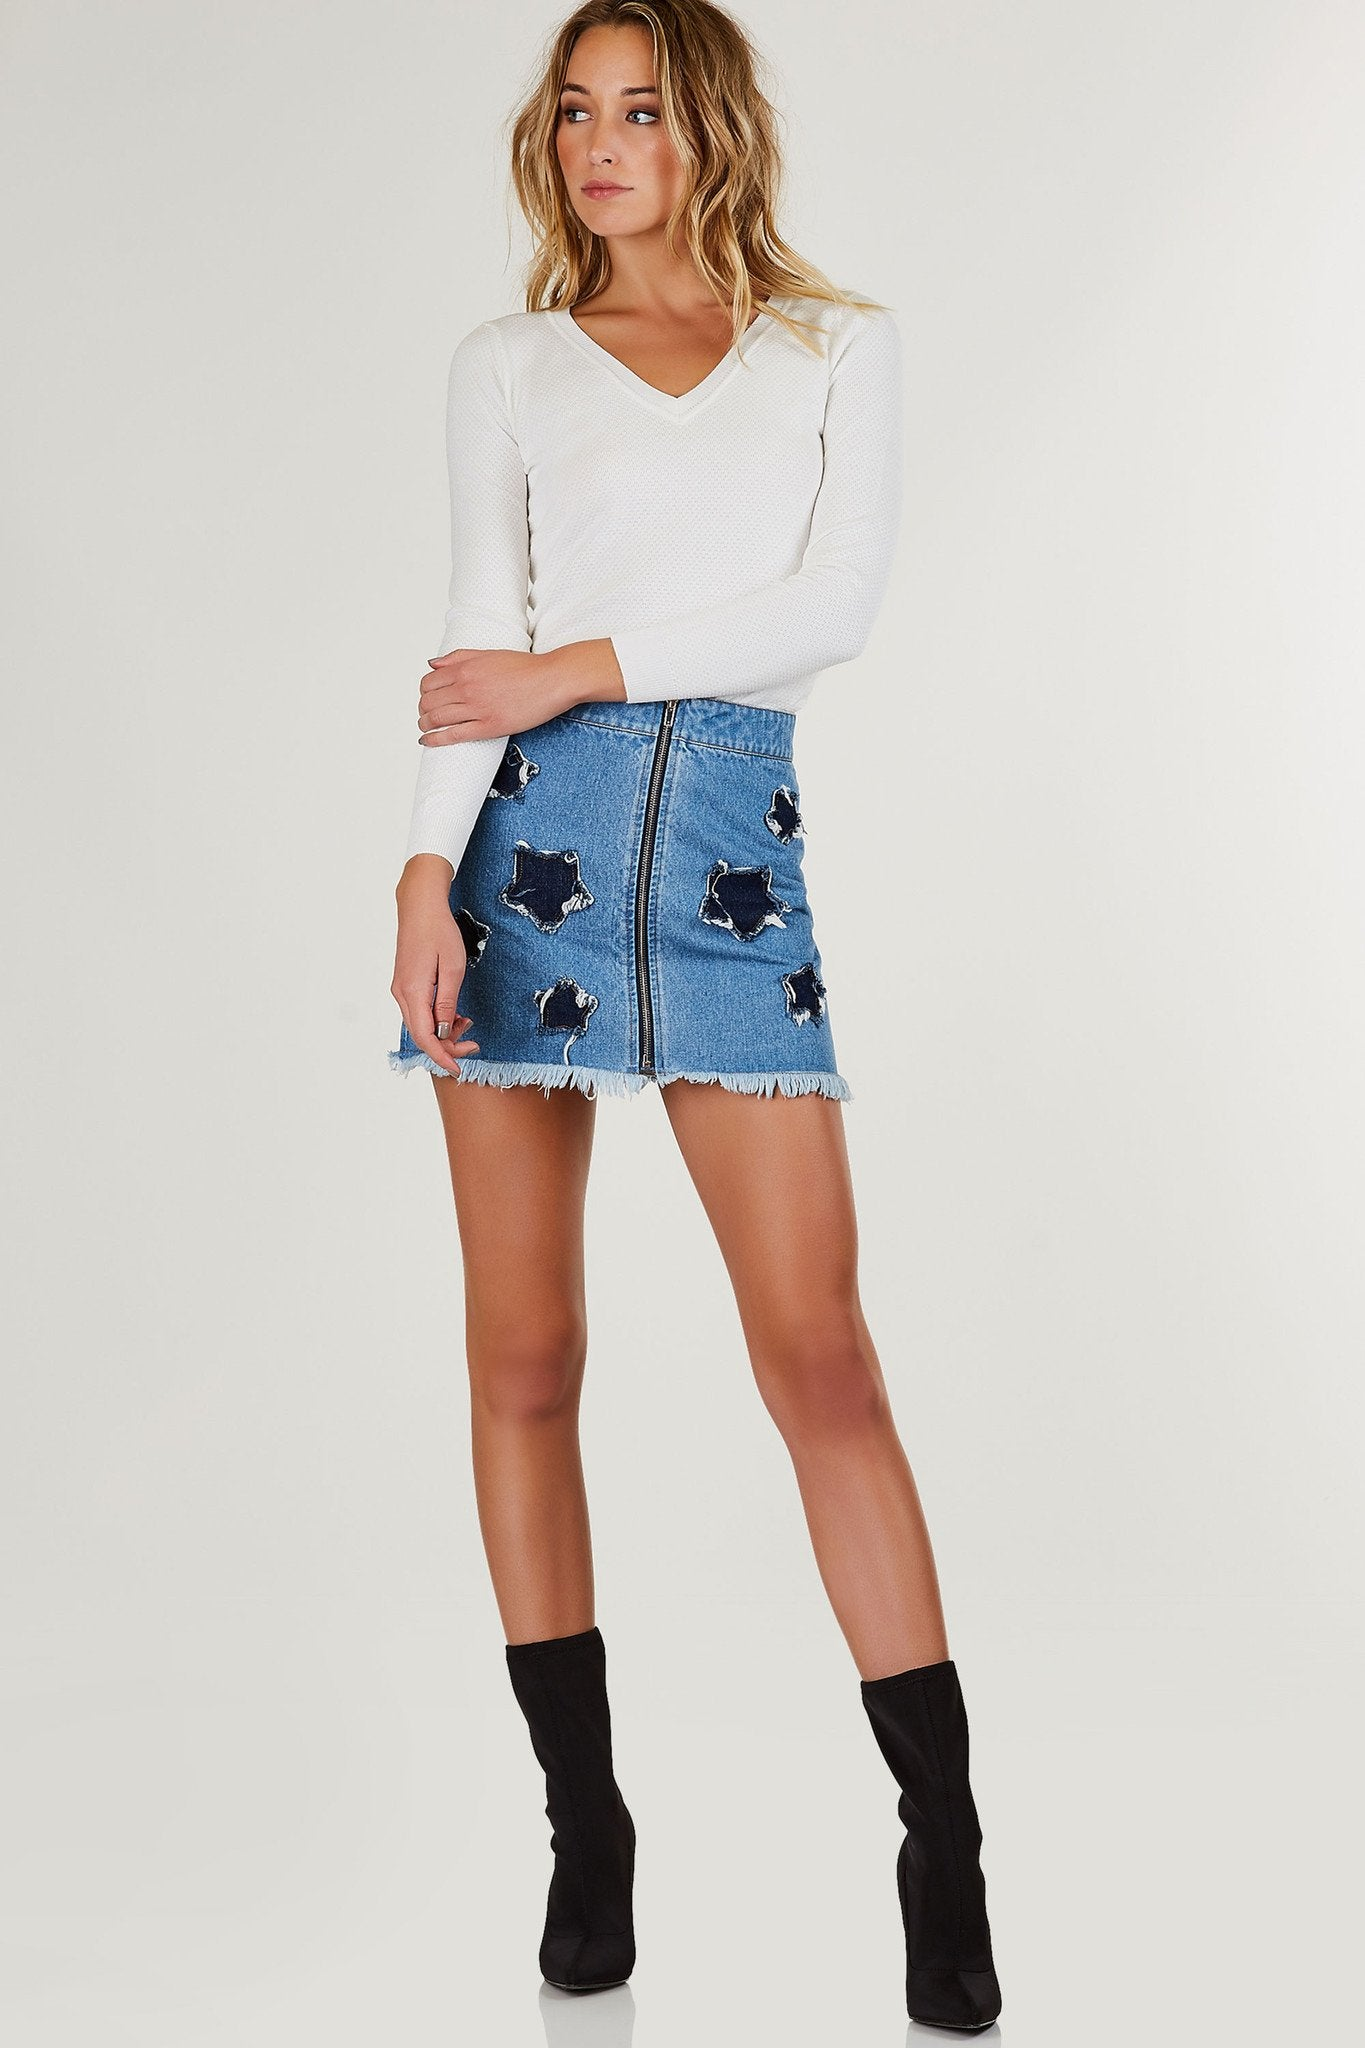 Mid rise denim mini skirt with star shape patches. Front zip closure with straight frayed raw hem.